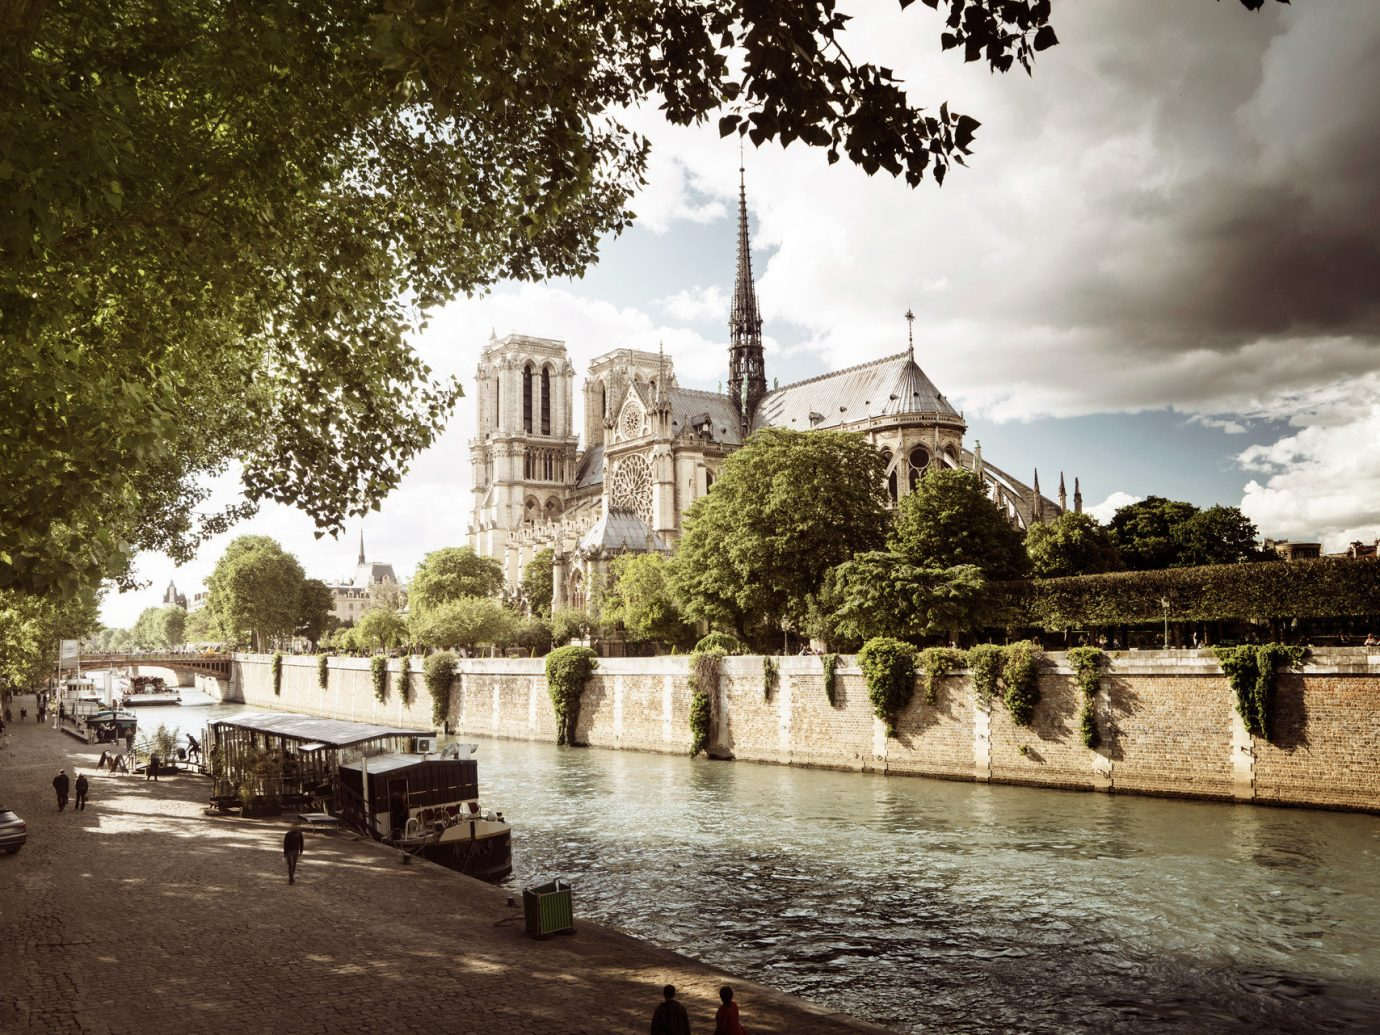 France Hotels Paris Romance Trip Ideas outdoor tree water landmark urban area human settlement River reflection tourism château ancient history waterway cityscape water feature place of worship palace temple flower Ruins travel